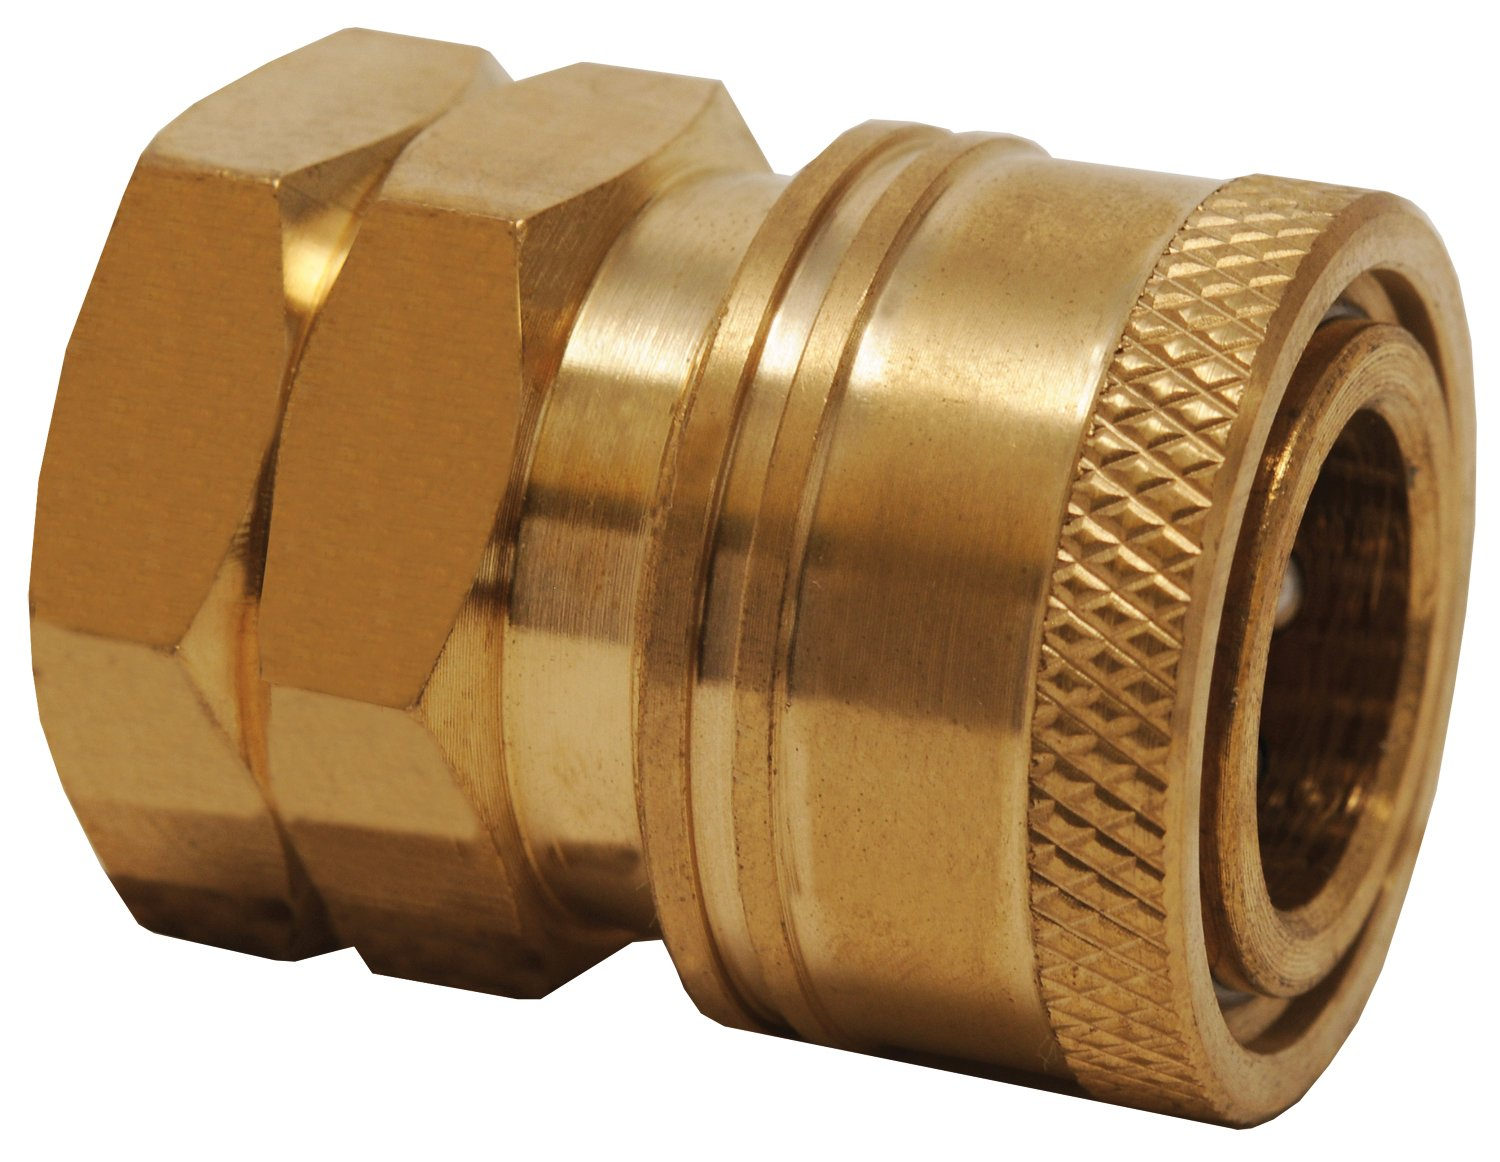 Hot Max 29019 1/4-Inch Female Quick Coupler Socket by Hot Max